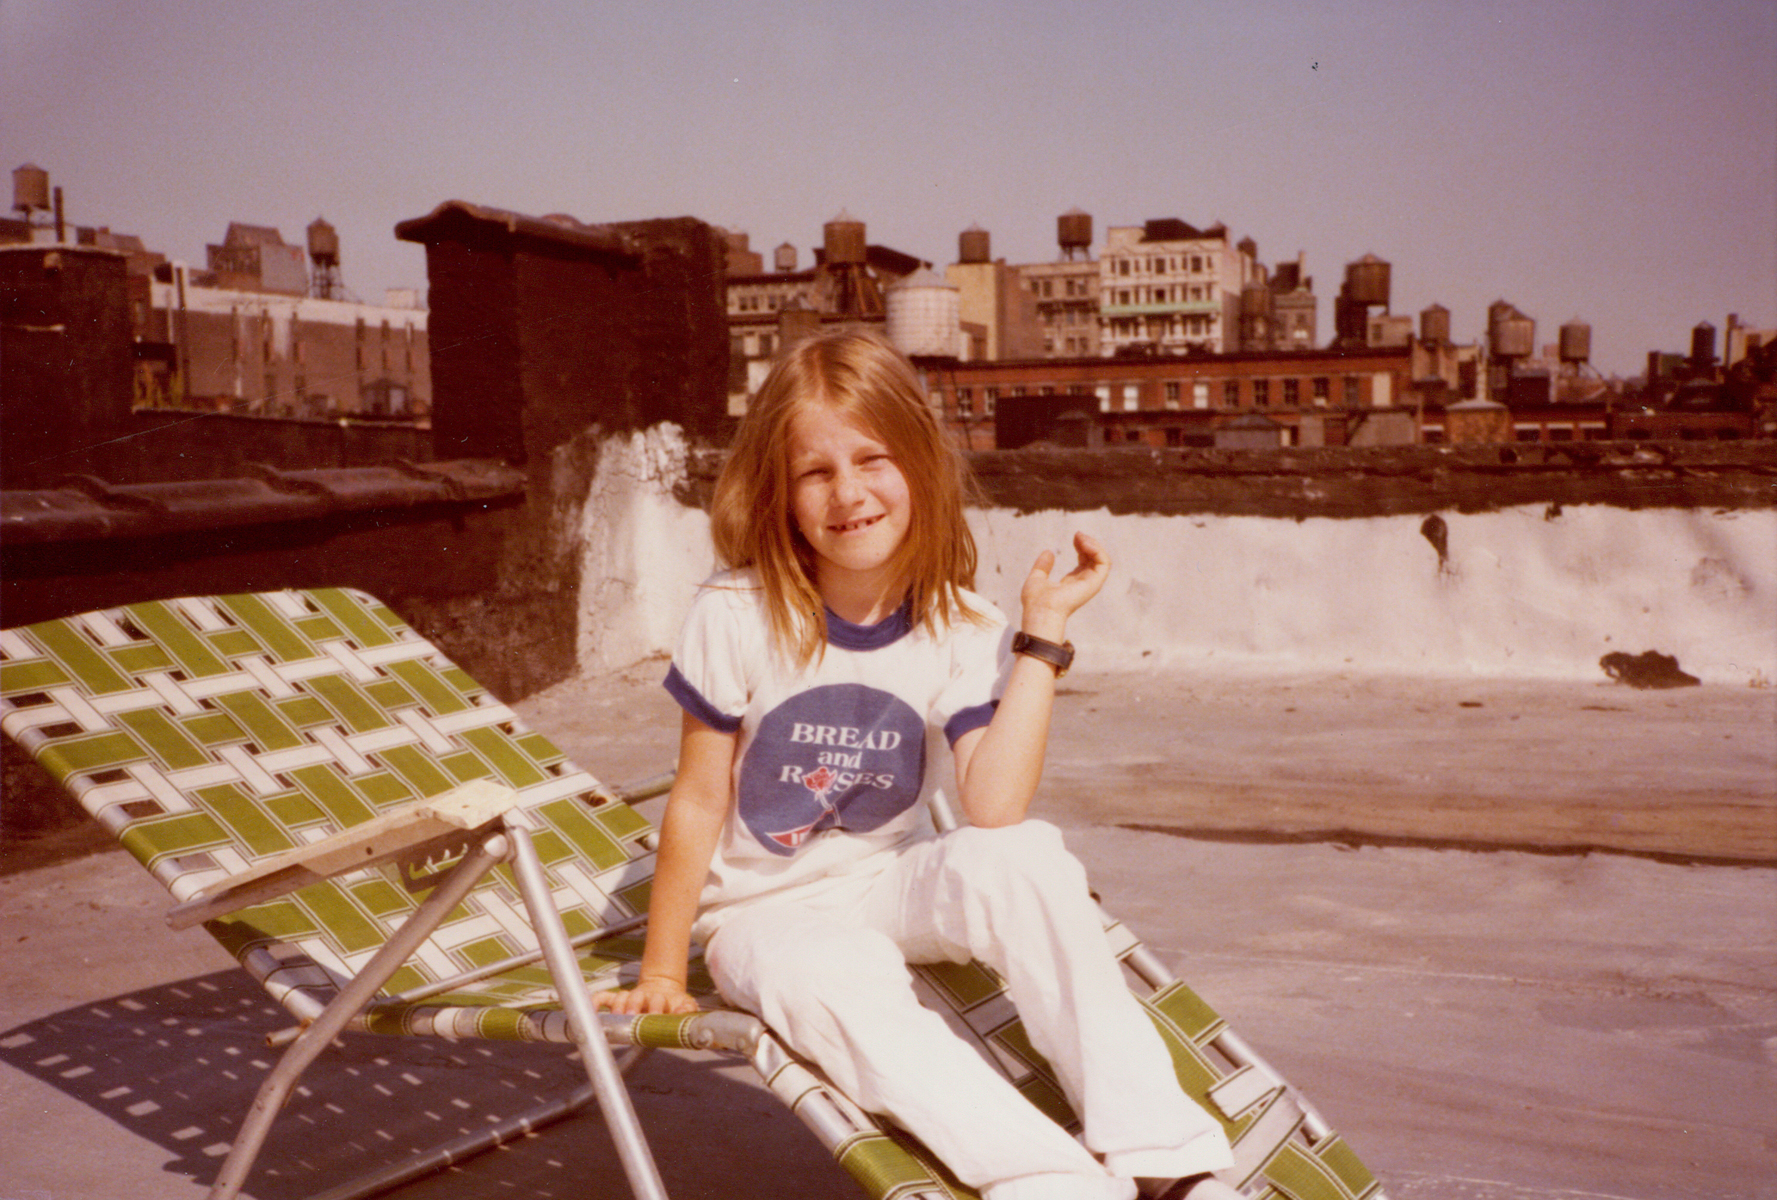 Jessica 1980 roof 69 Wooster St